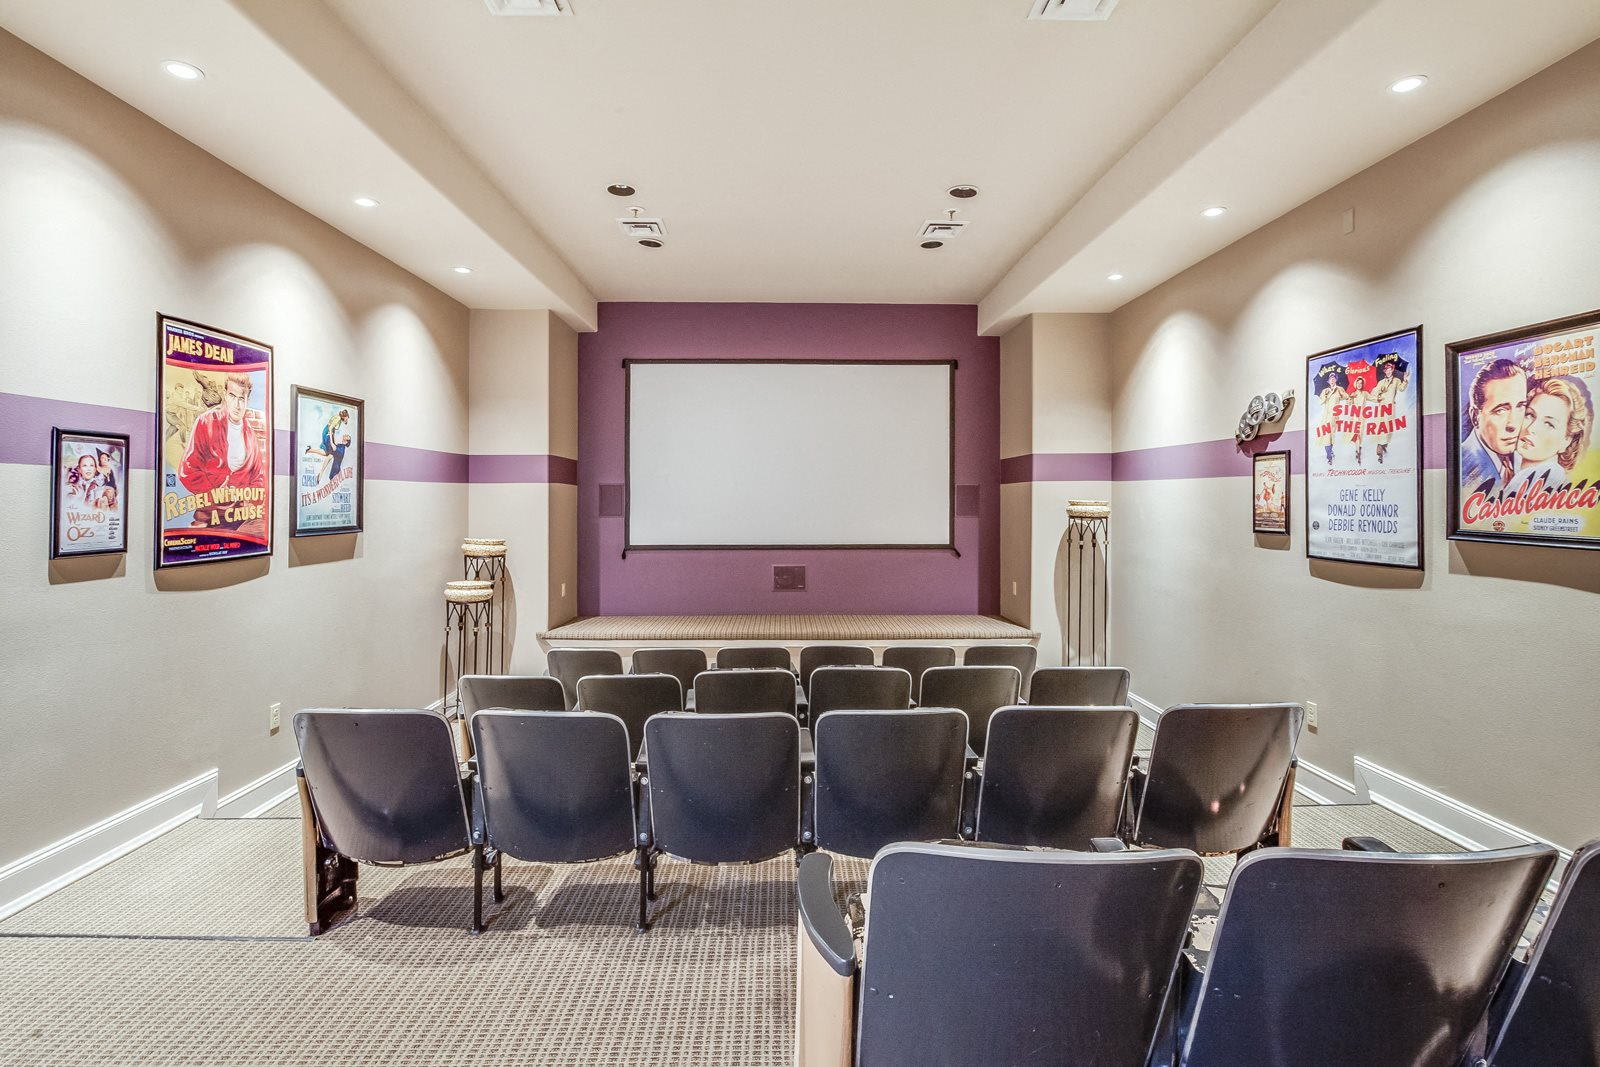 Club 1201 Cinema Room at Platform 14, Hillsboro, Oregon